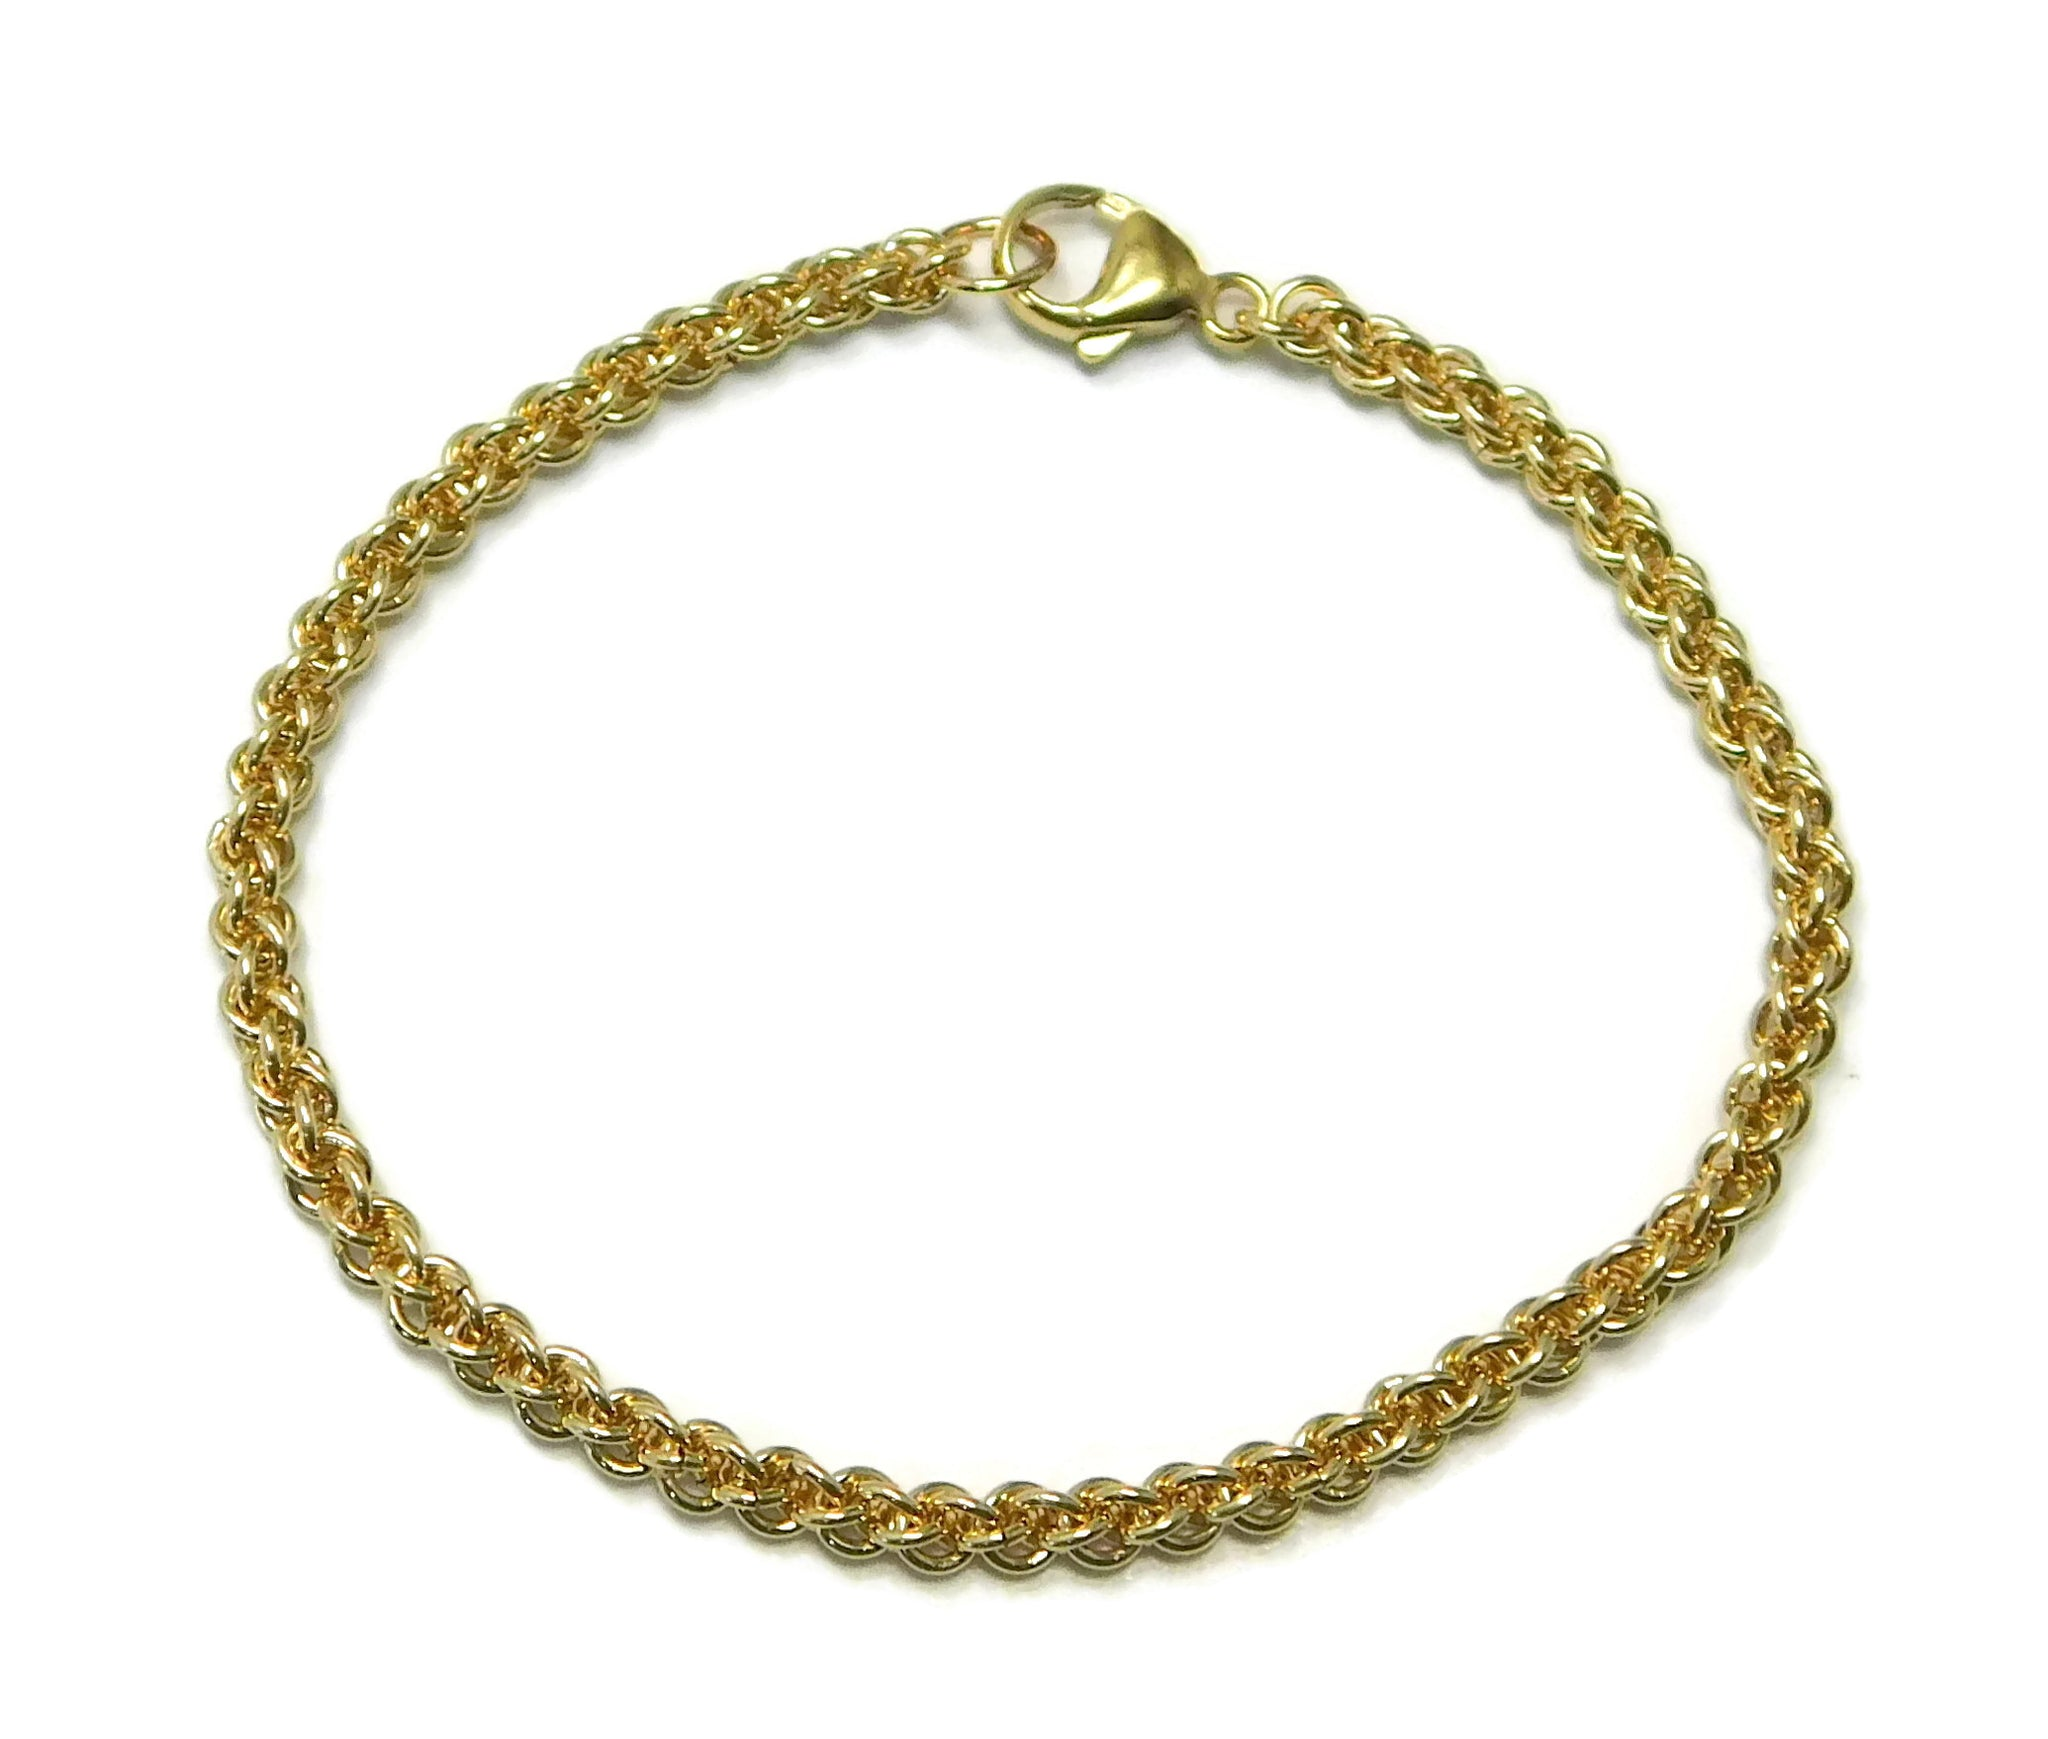 14kt gold fill jens pind chainmaille bracelet